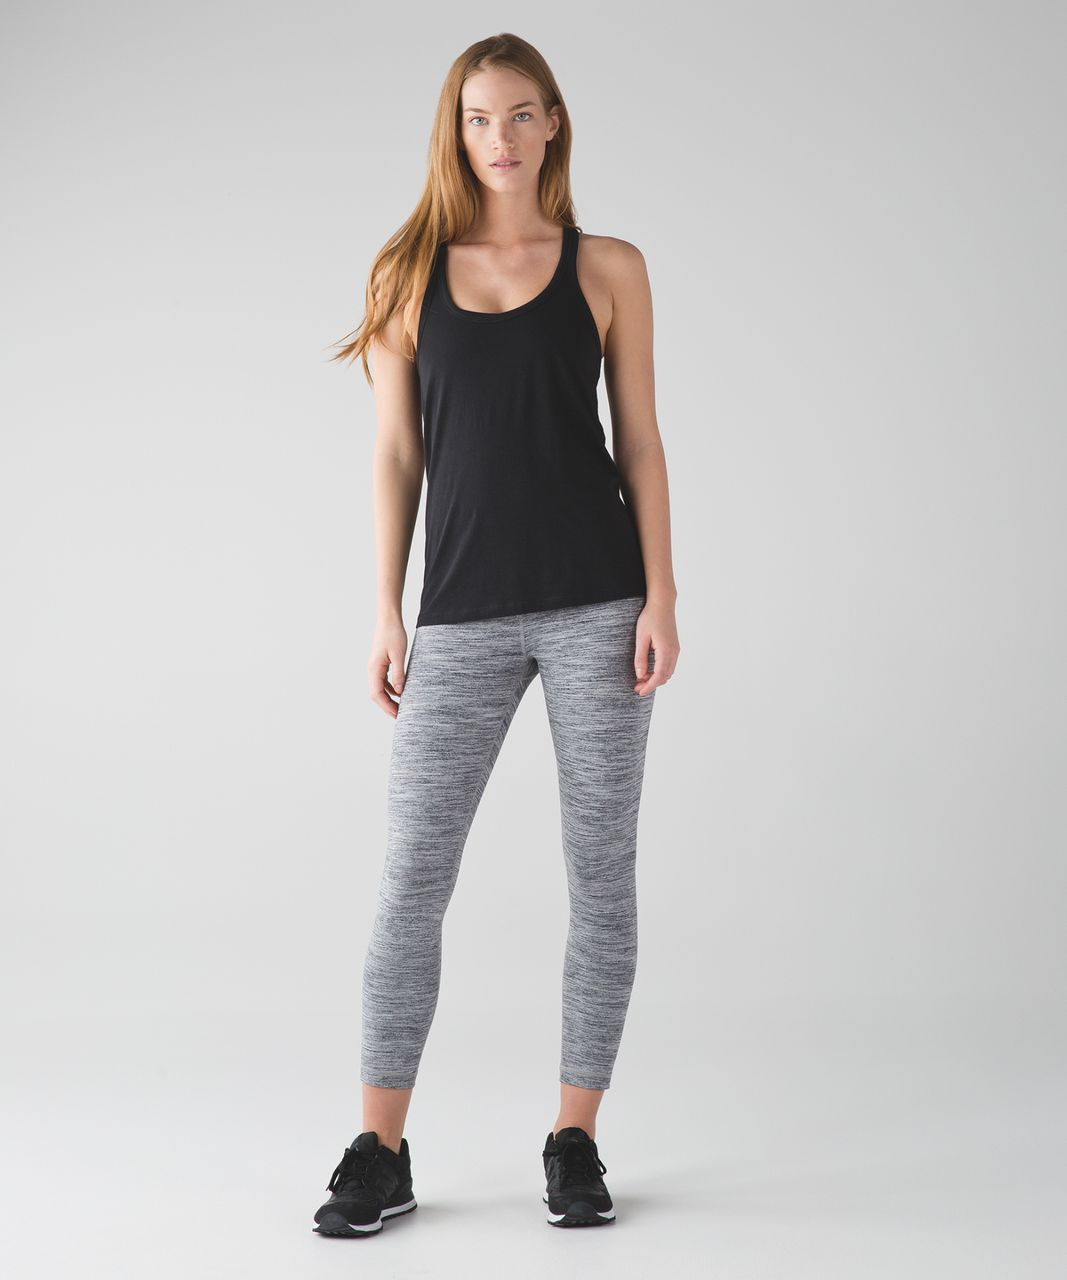 Lululemon High Times Pant - Space Dye Camo Seal Grey Deep Coal